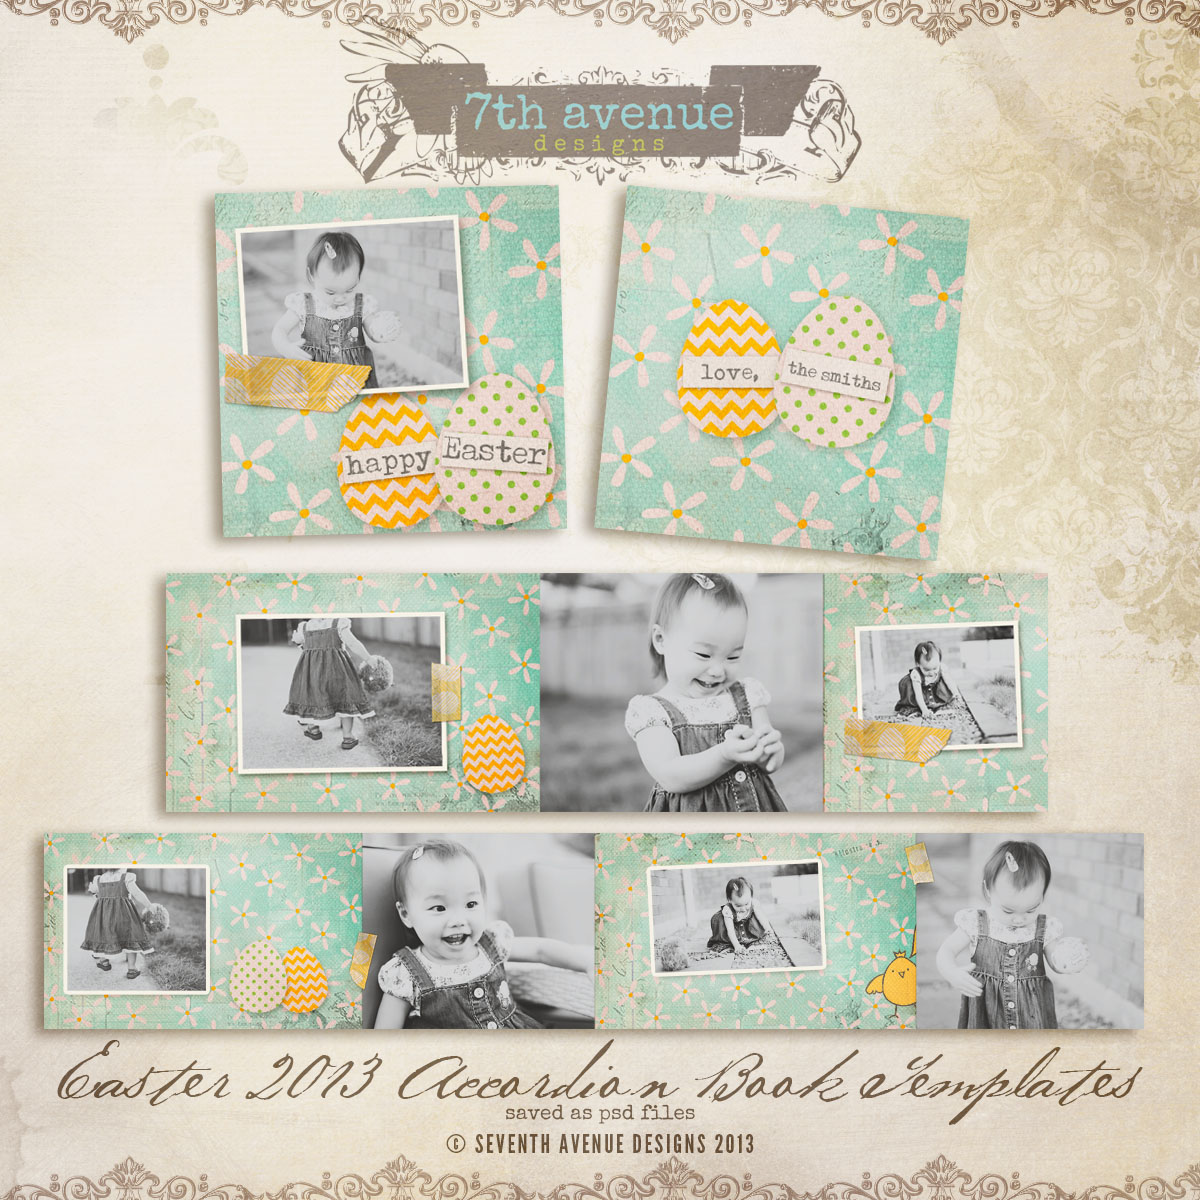 Easter 2013 3x3 Accordion mini templates